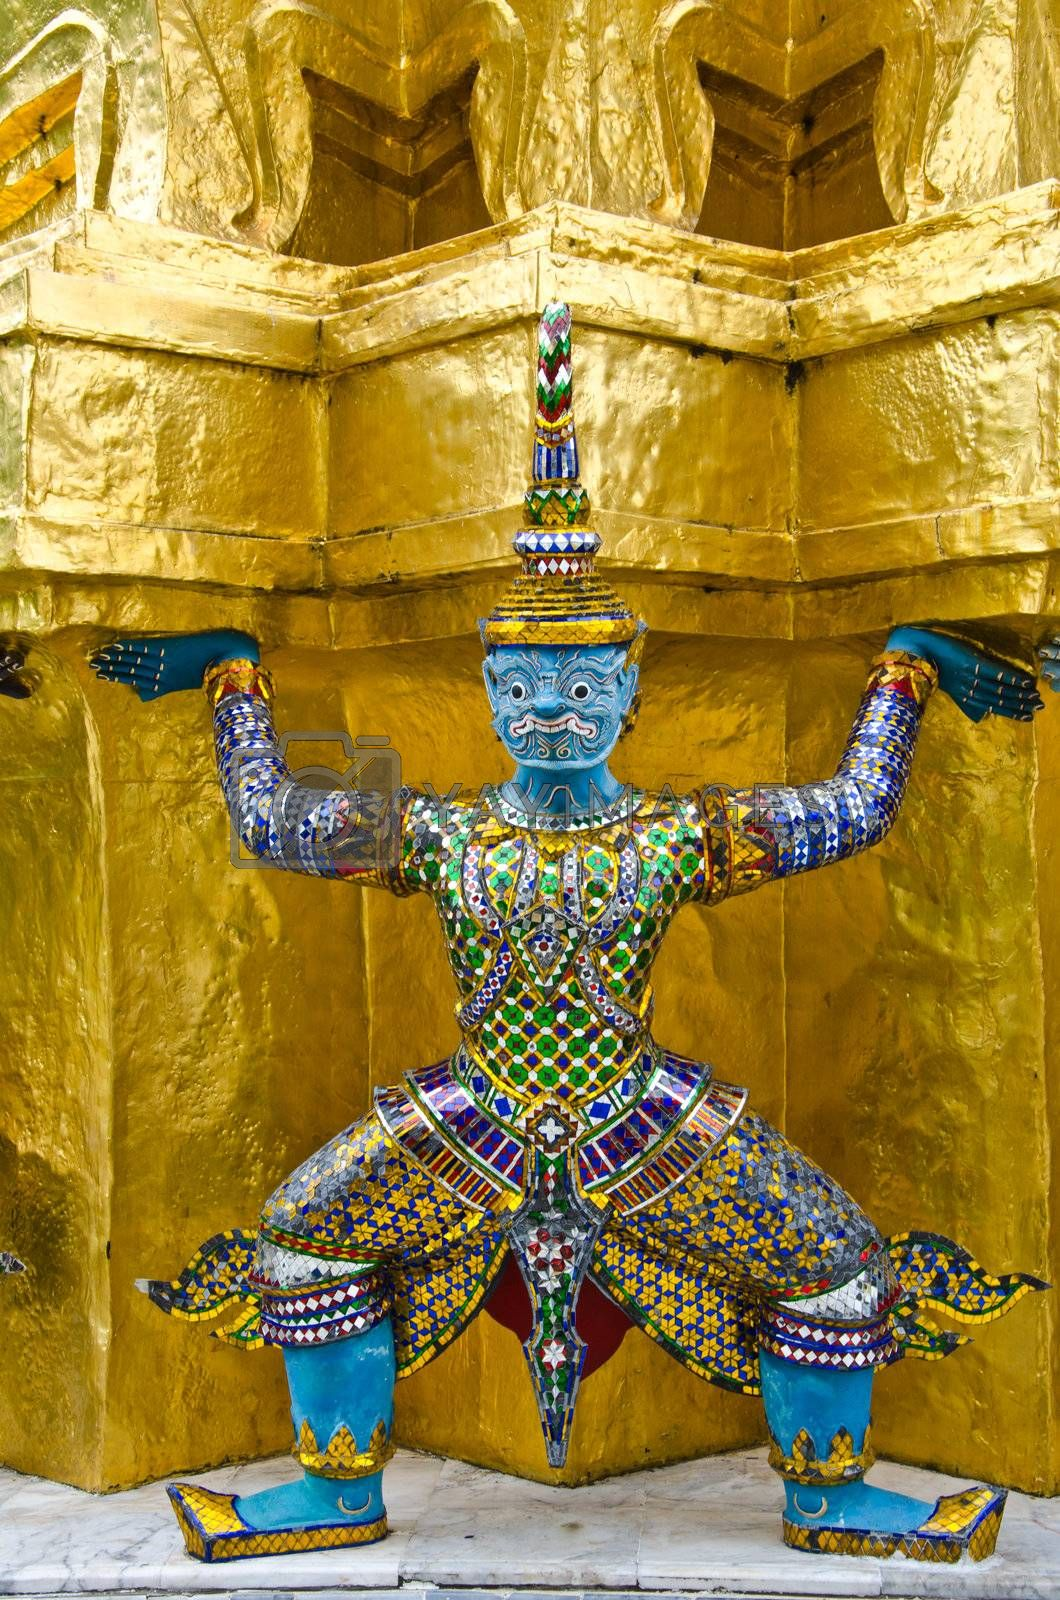 Guardians Surrounding Temple, Golden Pagoda at Wat Phra Kaew